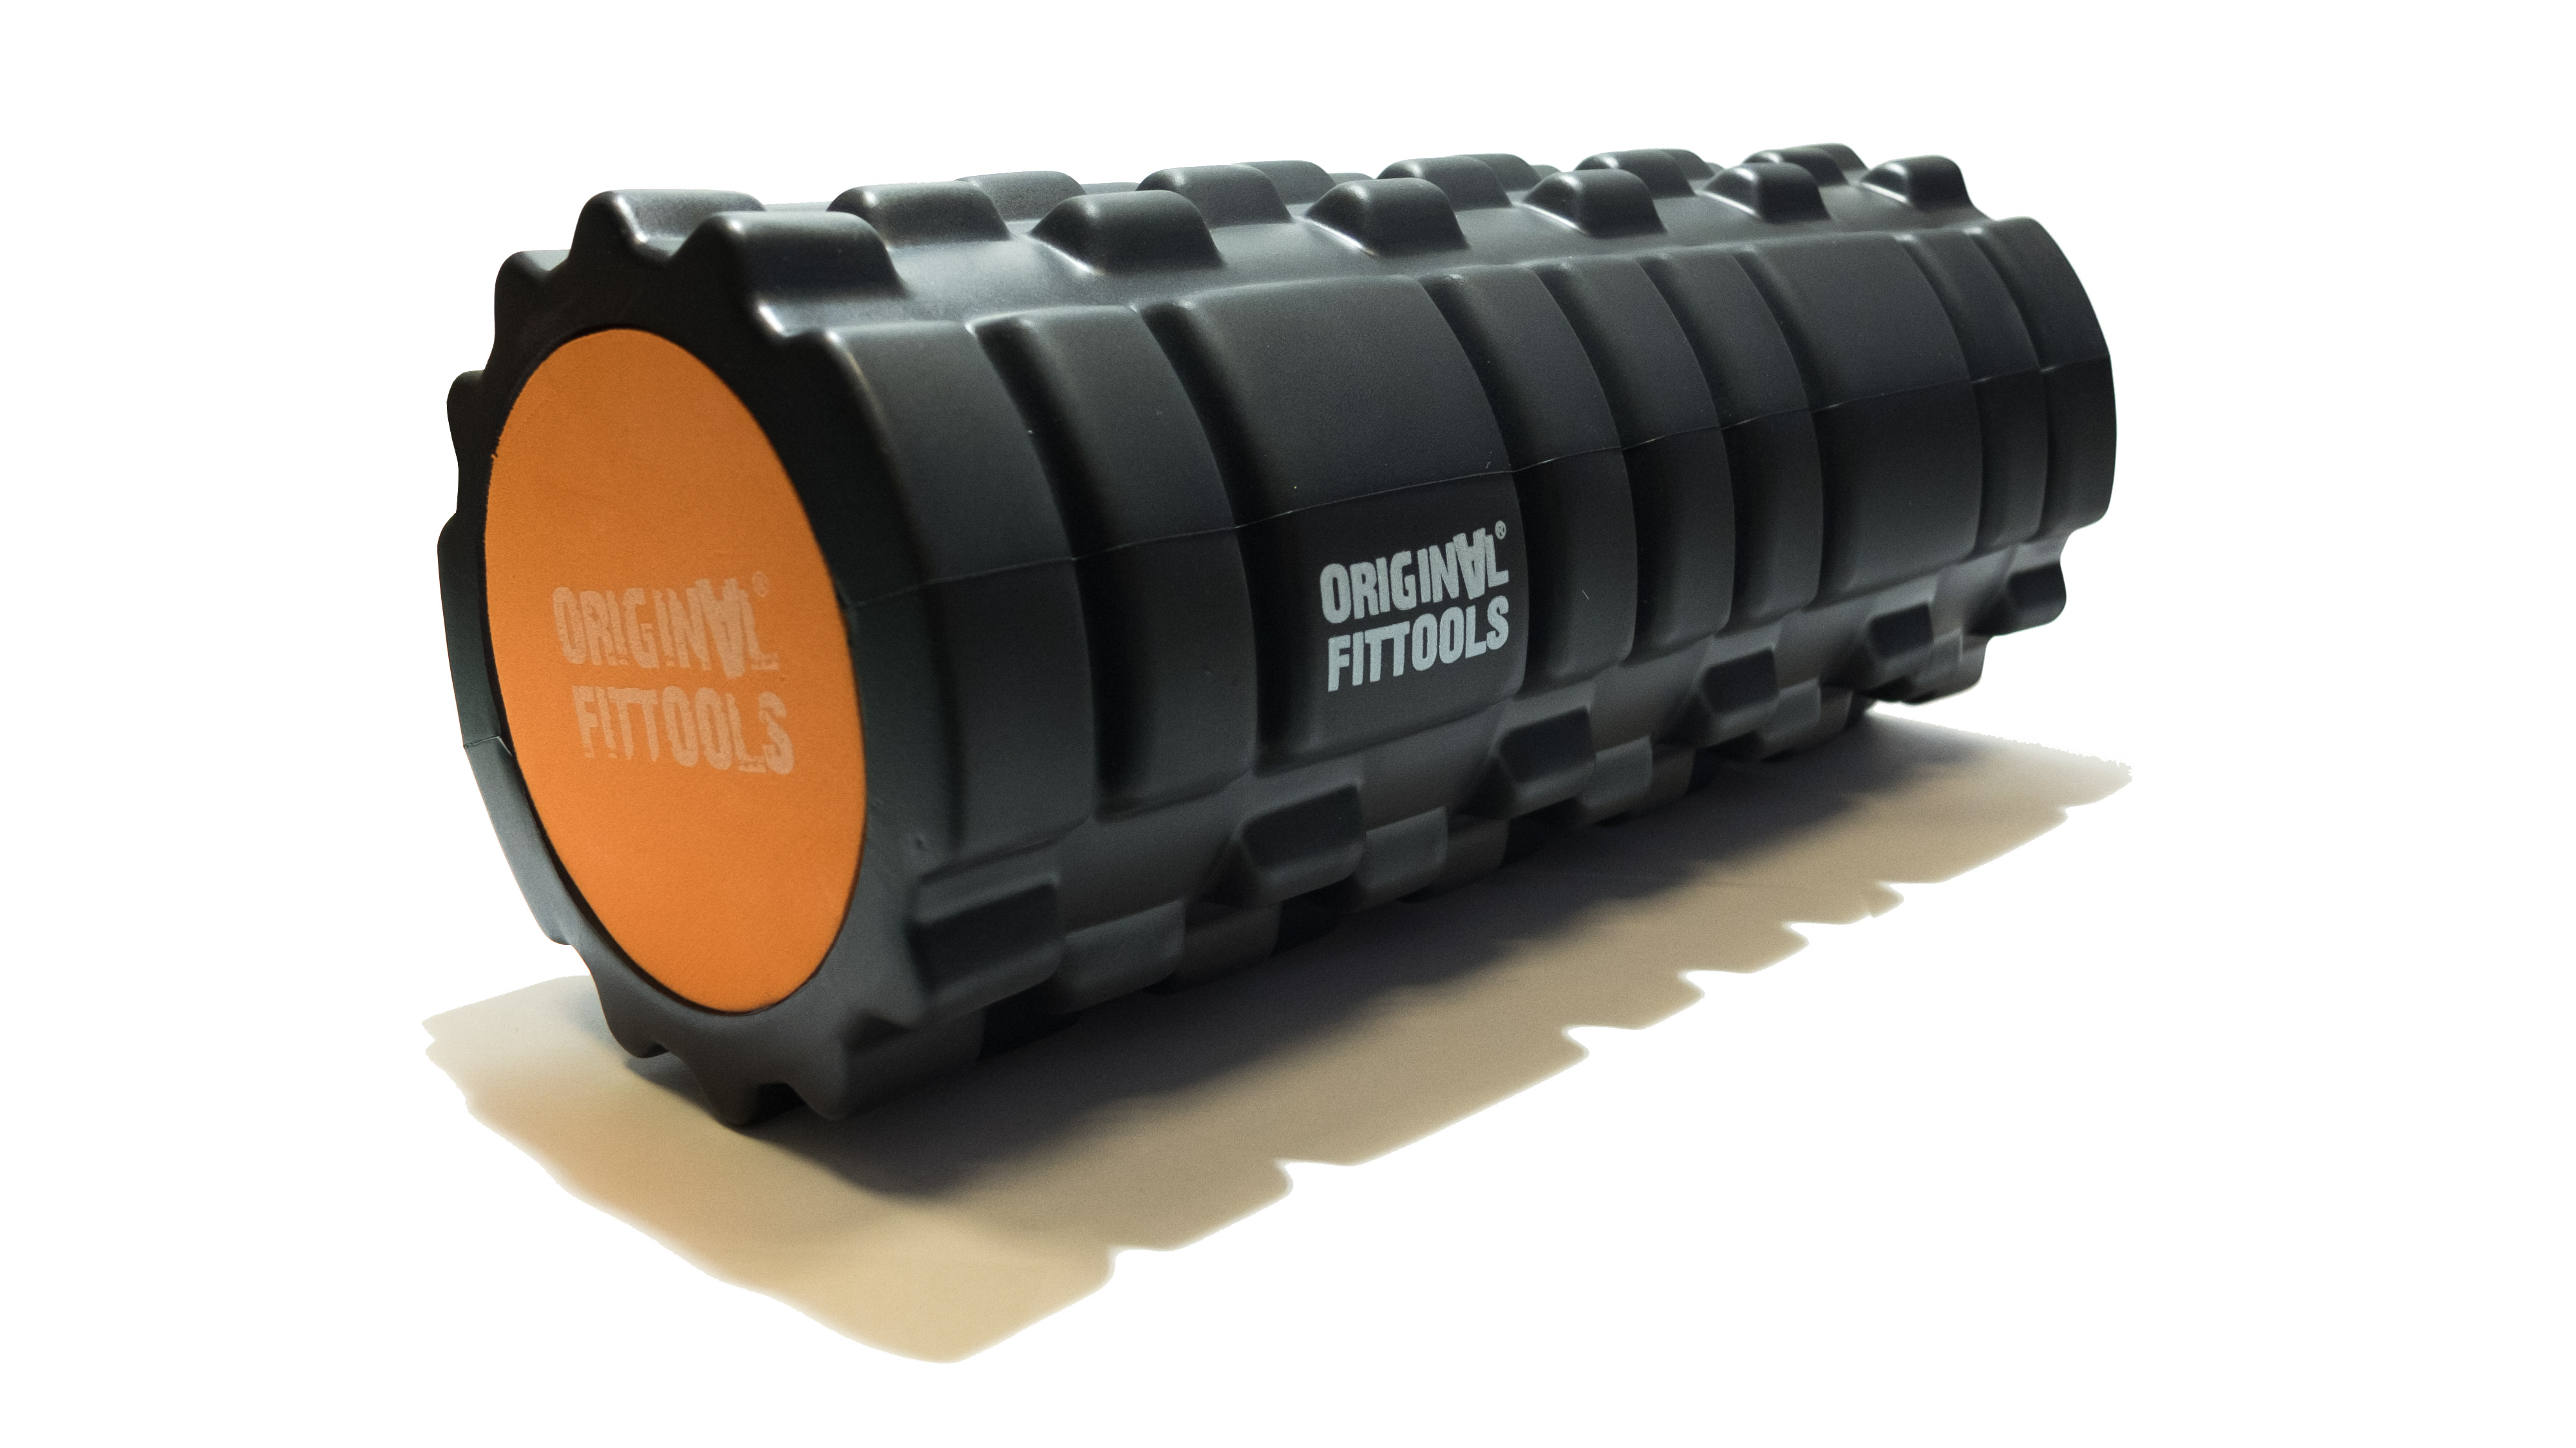 Original FITTOOLS Цилиндр массажный 33 x 14 см черный двойной FT-DOUBLE-ROLL